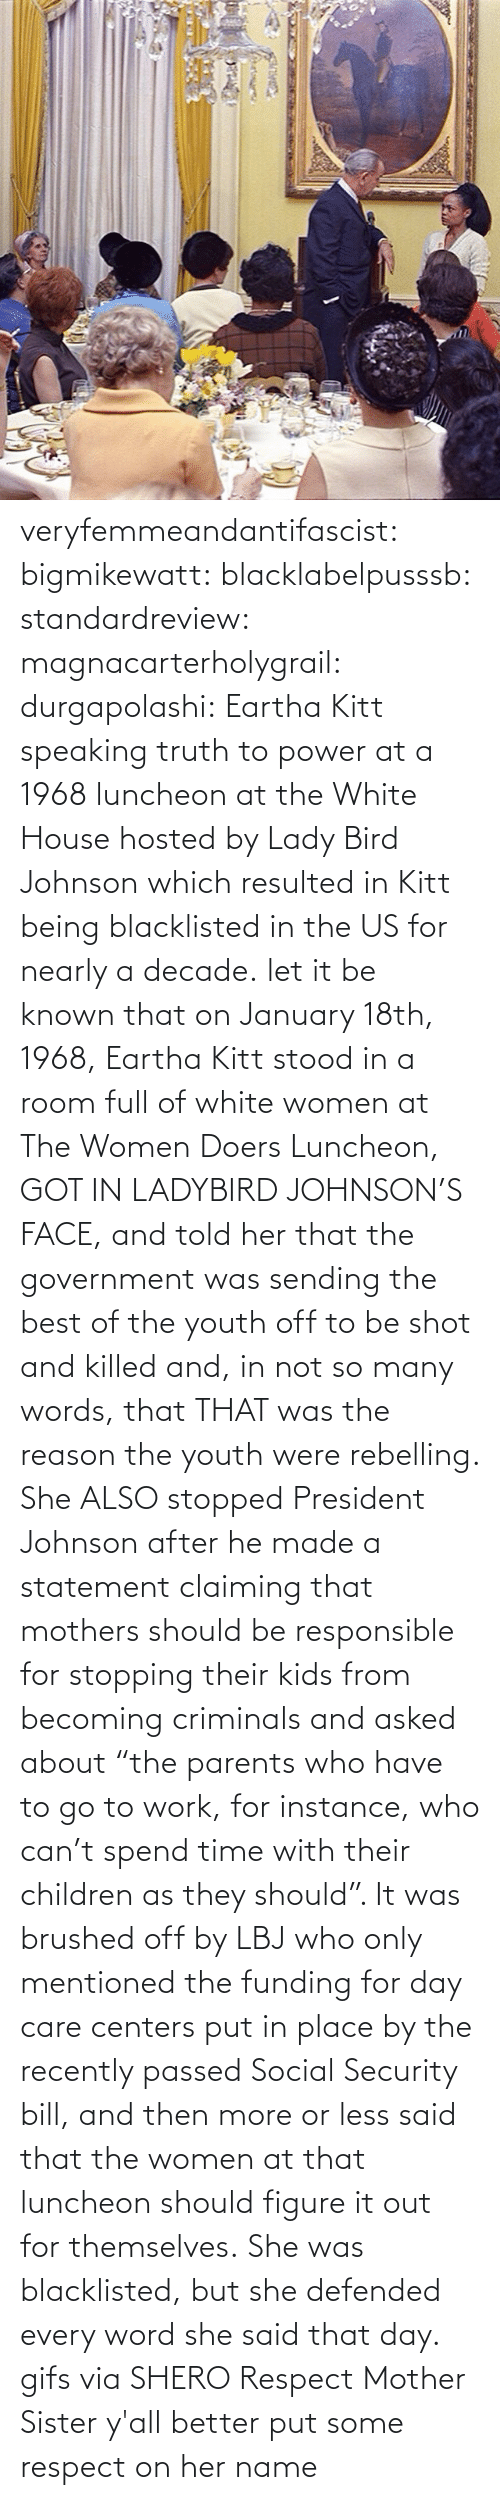 "The Us: veryfemmeandantifascist: bigmikewatt:  blacklabelpusssb:  standardreview:  magnacarterholygrail:  durgapolashi:  Eartha Kitt speaking truth to power at a 1968 luncheon at the White House hosted by Lady Bird Johnson which resulted in Kitt being blacklisted in the US for nearly a decade.  let it be known that on January 18th, 1968, Eartha Kitt stood in a room full of white women at The Women Doers Luncheon, GOT IN LADYBIRD JOHNSON'S FACE, and told her that the government was sending the best of the youth off to be shot and killed and, in not so many words, that THAT was the reason the youth were rebelling. She ALSO stopped President Johnson after he made a statement claiming that mothers should be responsible for stopping their kids from becoming criminals and asked about ""the parents who have to go to work, for instance, who can't spend time with their children as they should"". It was brushed off by LBJ who only mentioned the funding for day care centers put in place by the recently passed Social Security bill, and then more or less said that the women at that luncheon should figure it out for themselves. She was blacklisted, but she defended every word she said that day.    gifs via  SHERO   Respect Mother Sister  y'all better put some respect on her name"